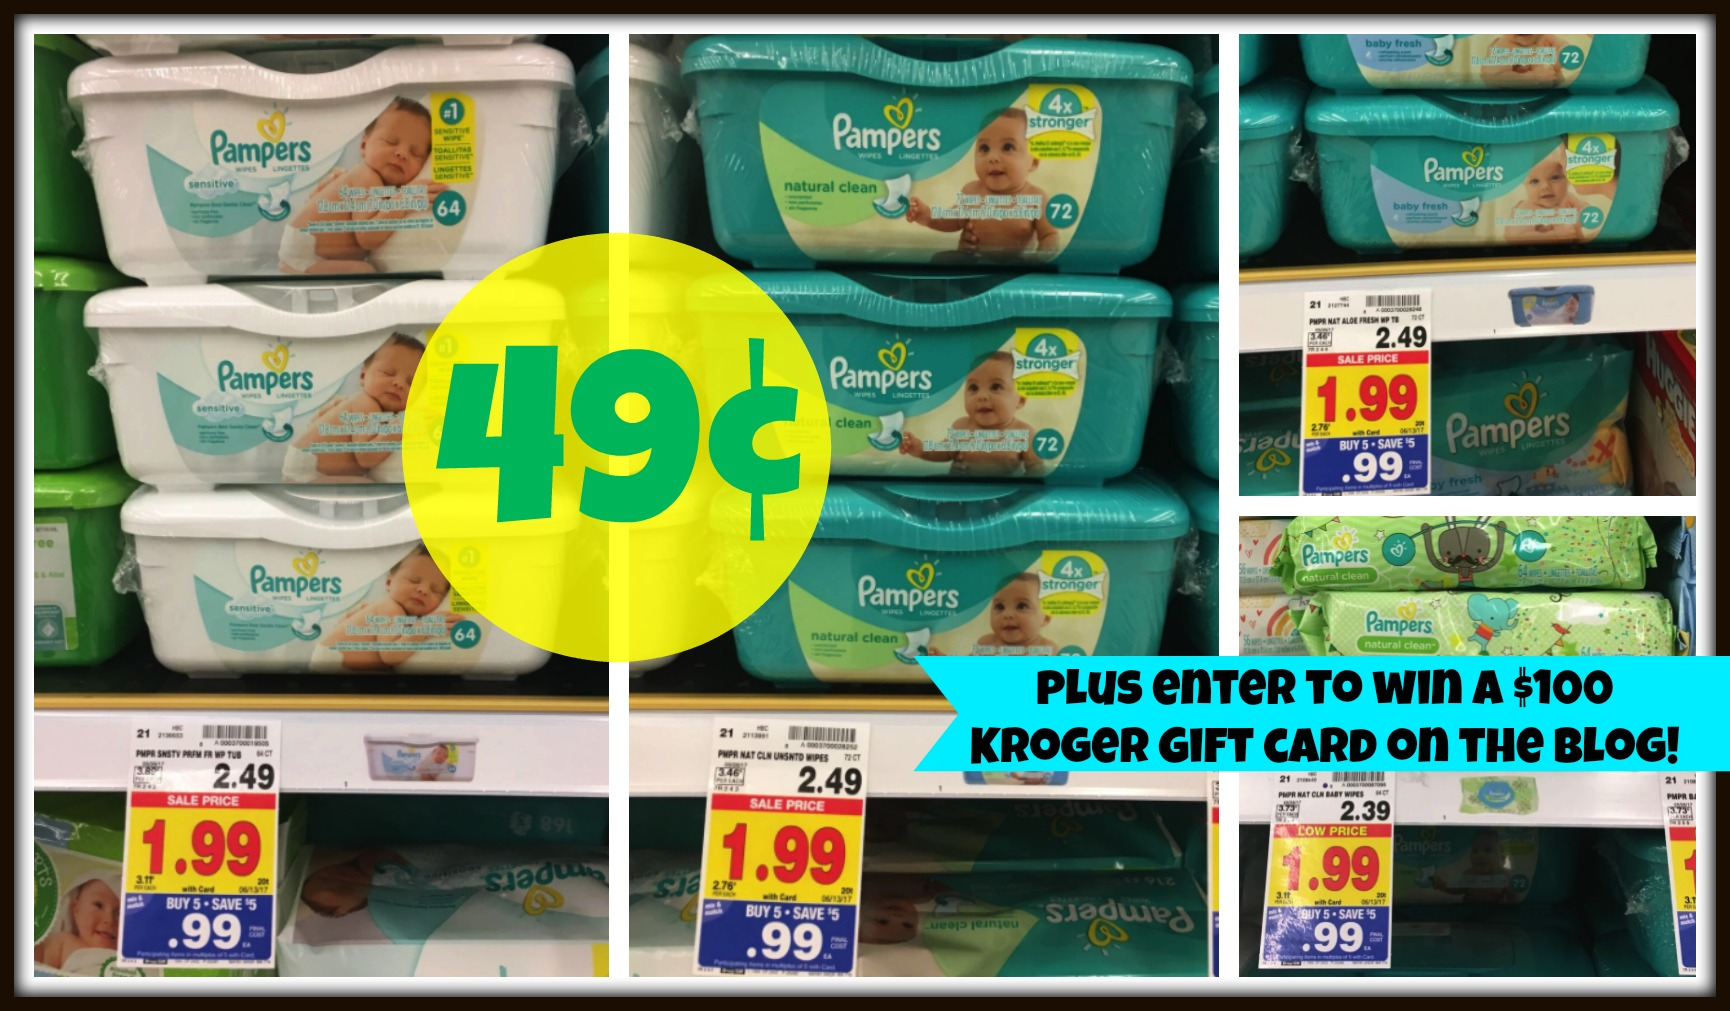 photograph regarding Pampers Wipes Printable Coupons named Pampers Wipes Merely $0.49 with Kroger Mega Occasion (Additionally Input